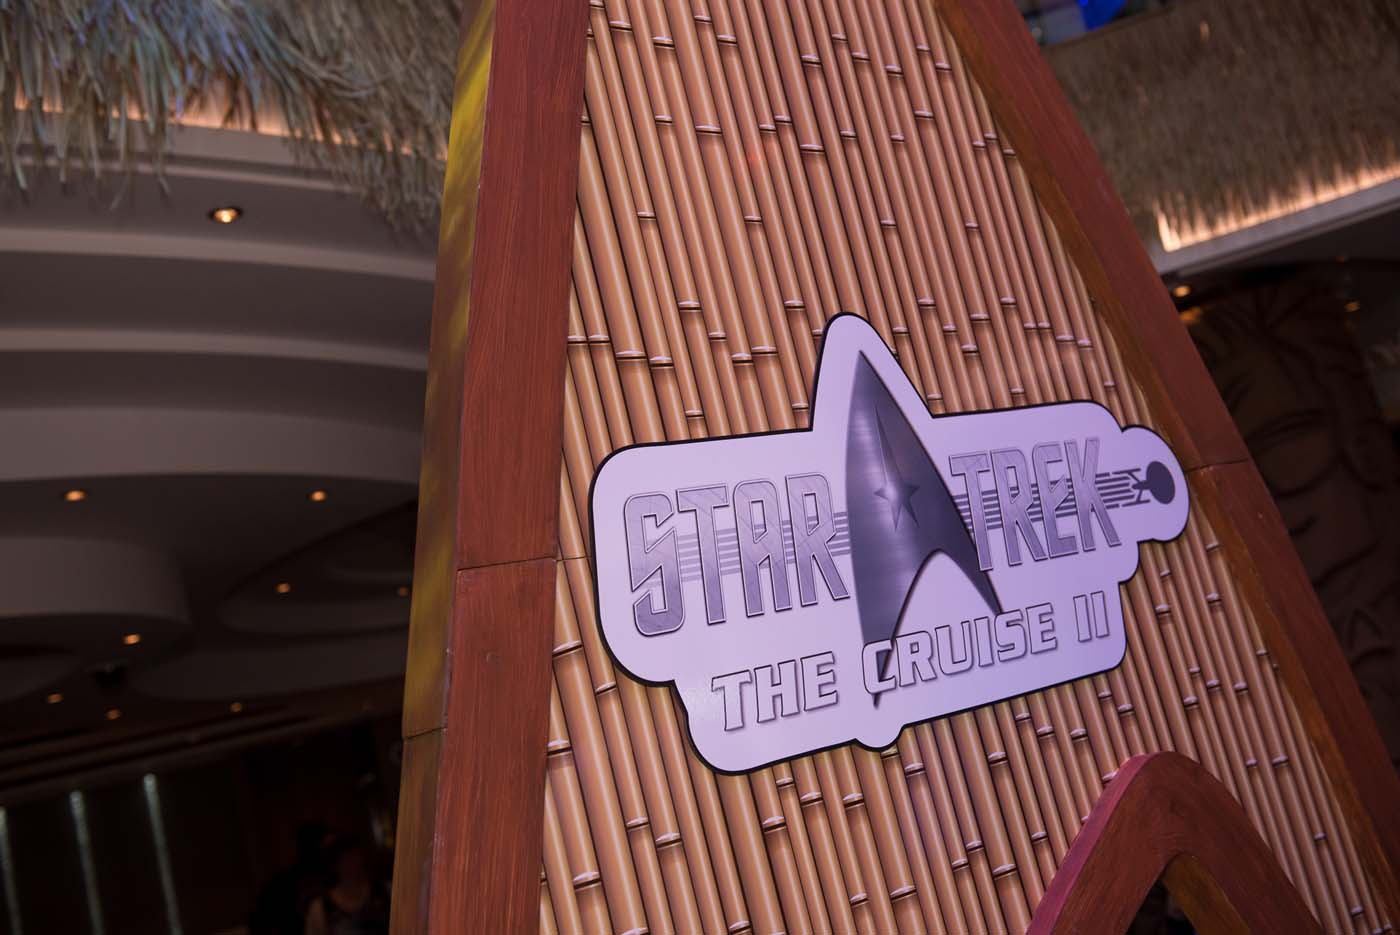 Star Trek The Cruise Entertain Tours